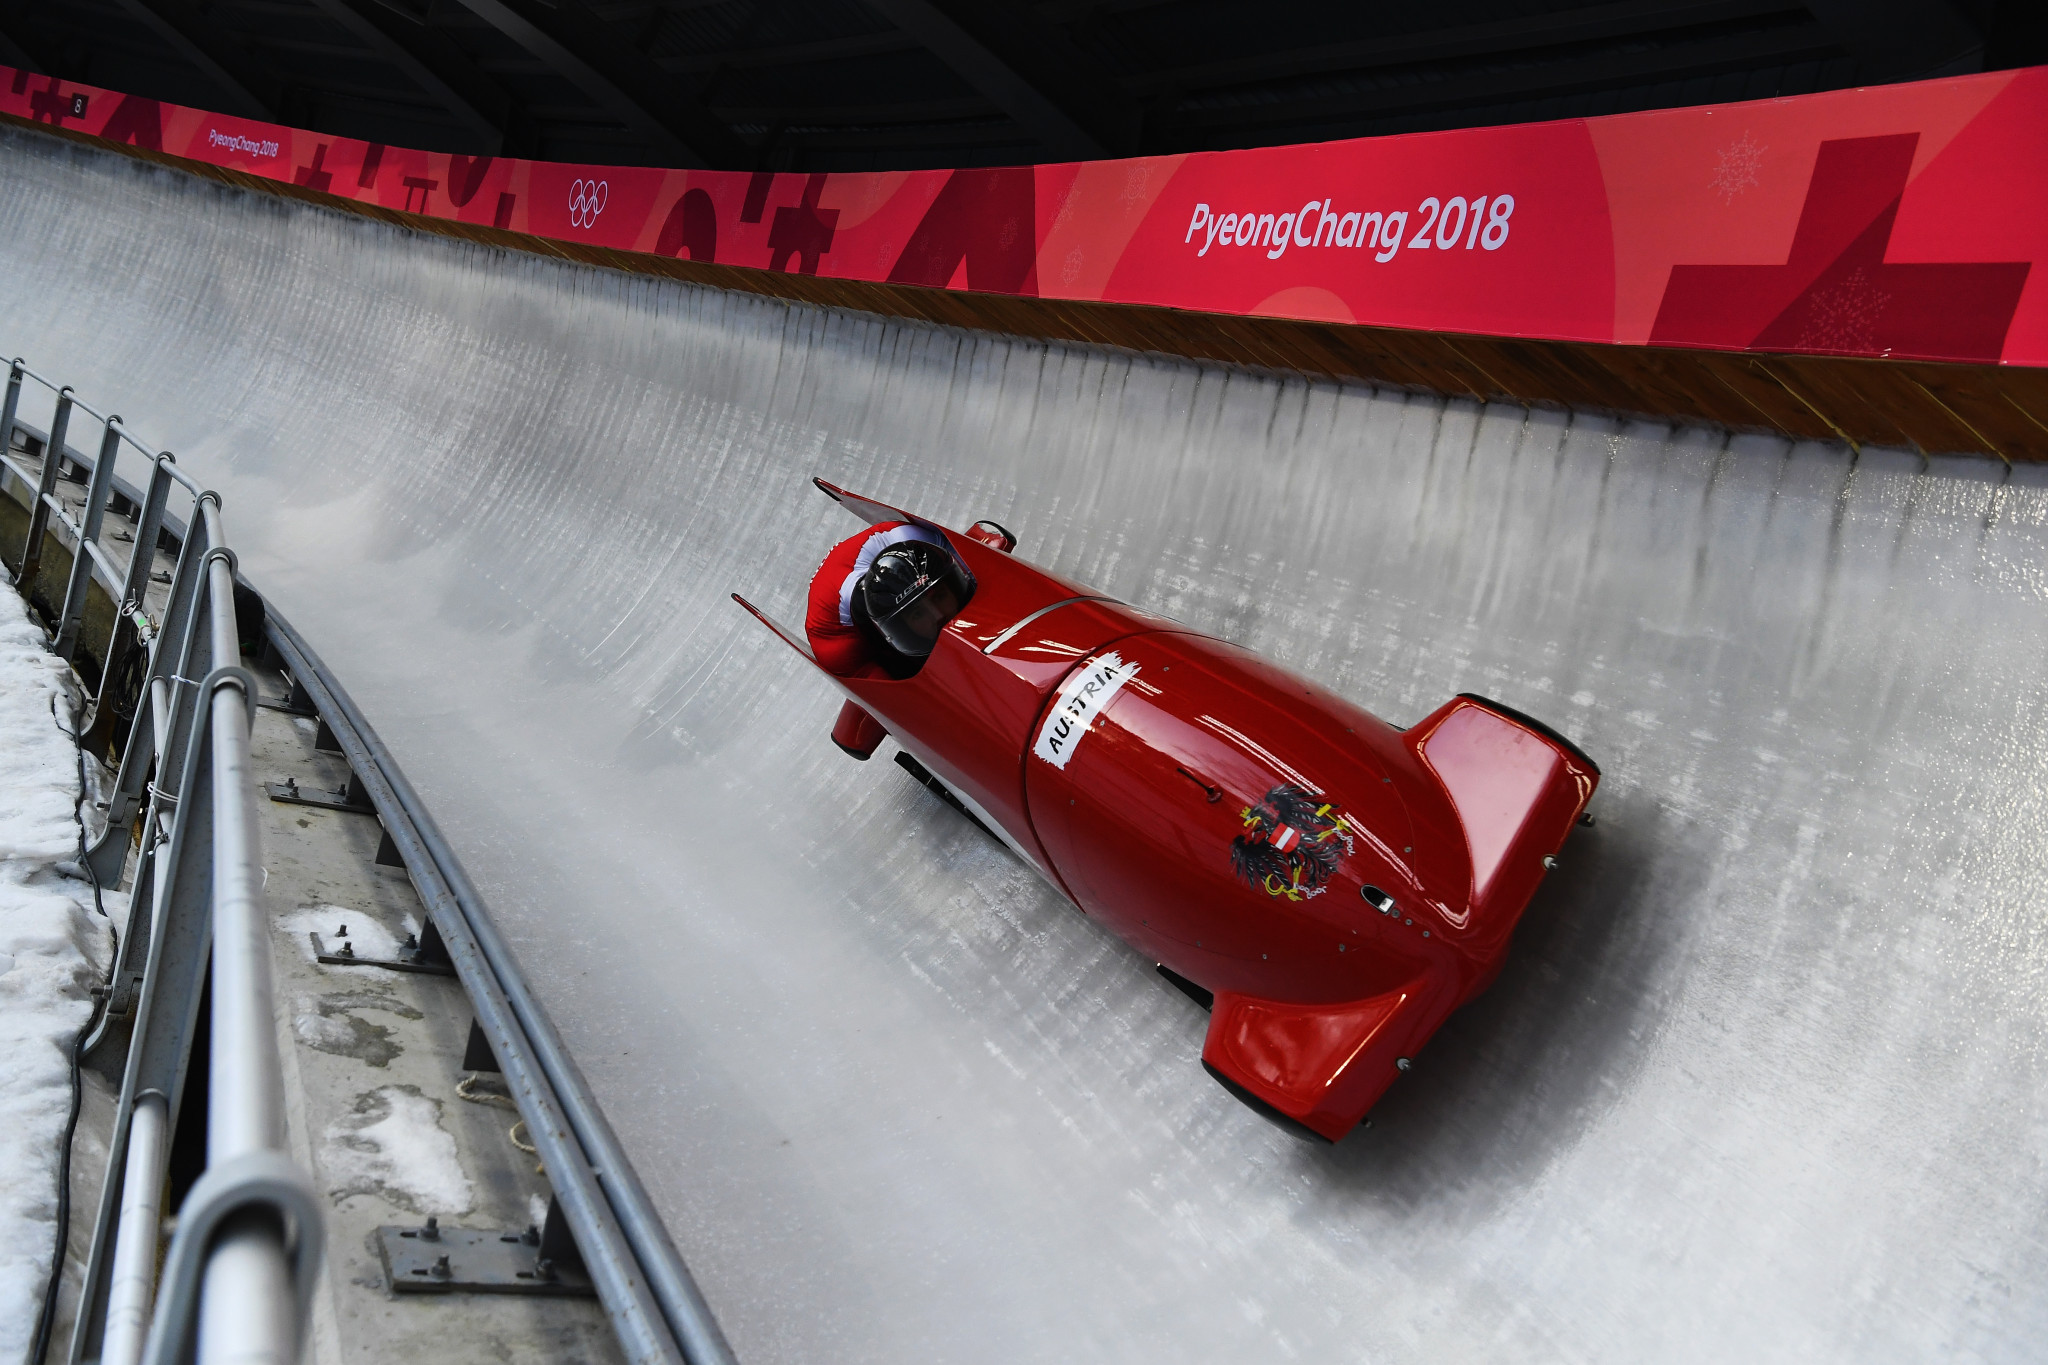 Pyeongchang 2018: Day seven of competition